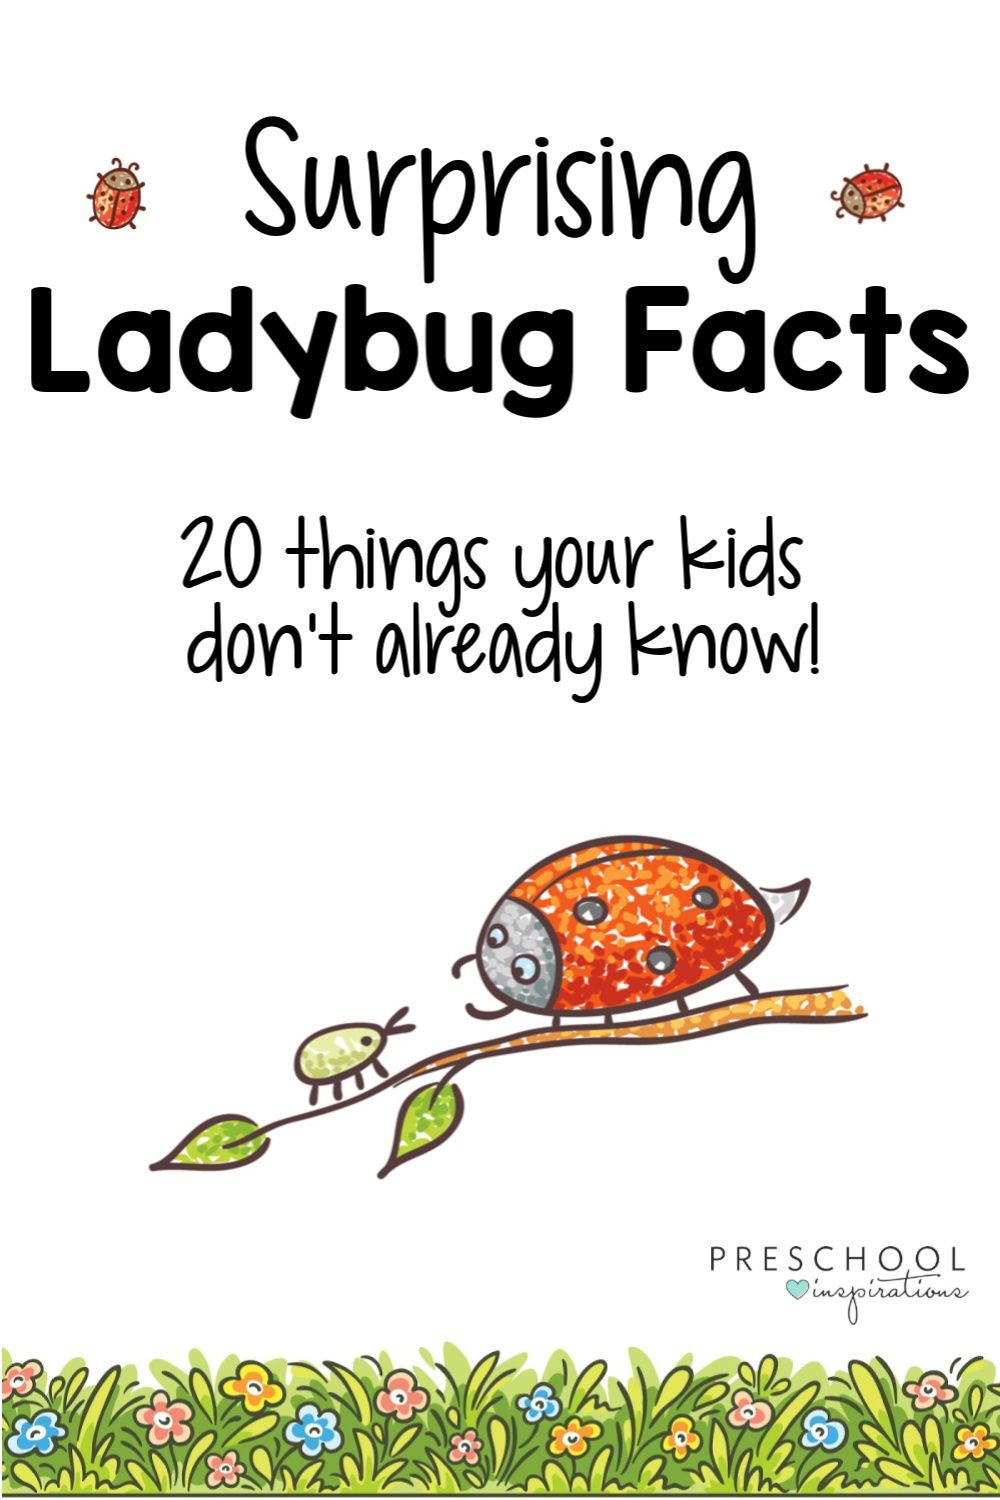 Ladybug Facts for Kids - Preschool Inspirations in 2020 ...